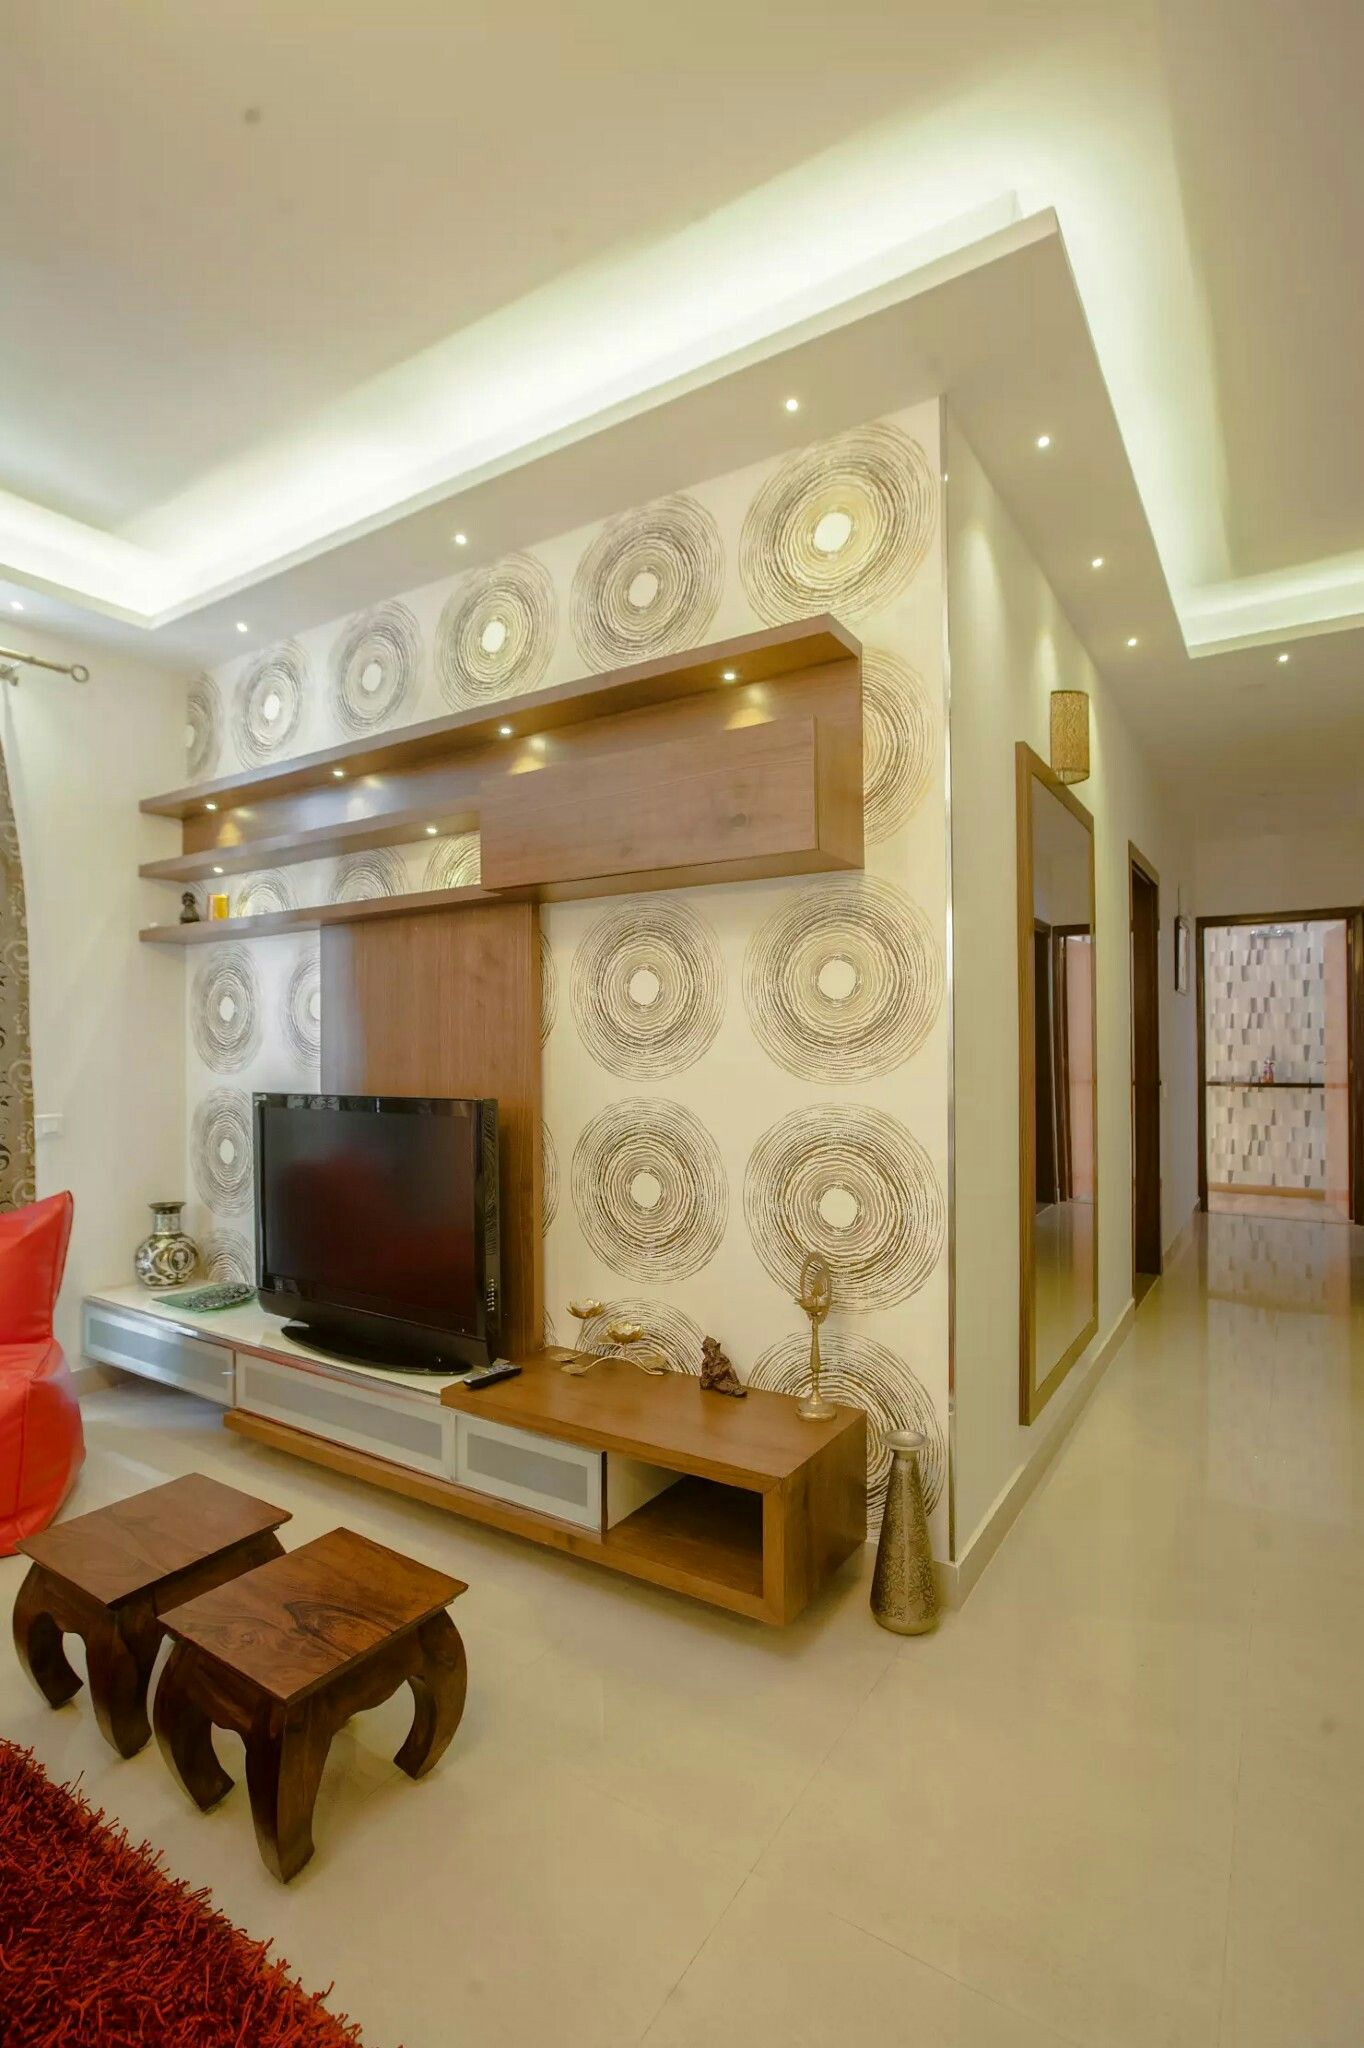 Lcd Panel Design Interior: Pin By ID Mukul Manglik On Tv Units